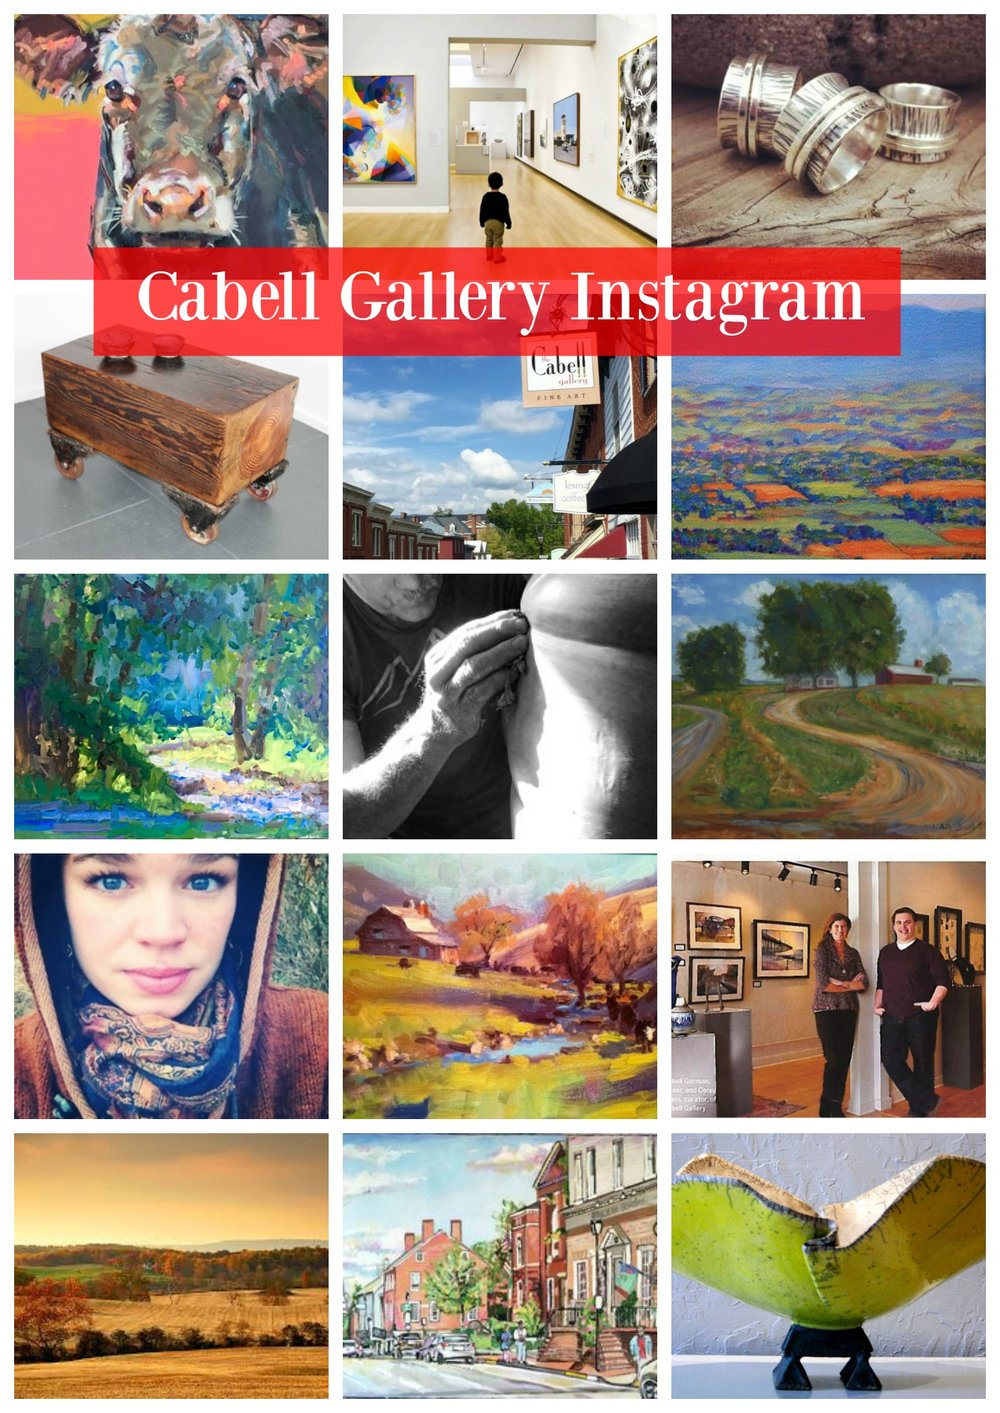 Cabell Gallery Instagram copy.jpg